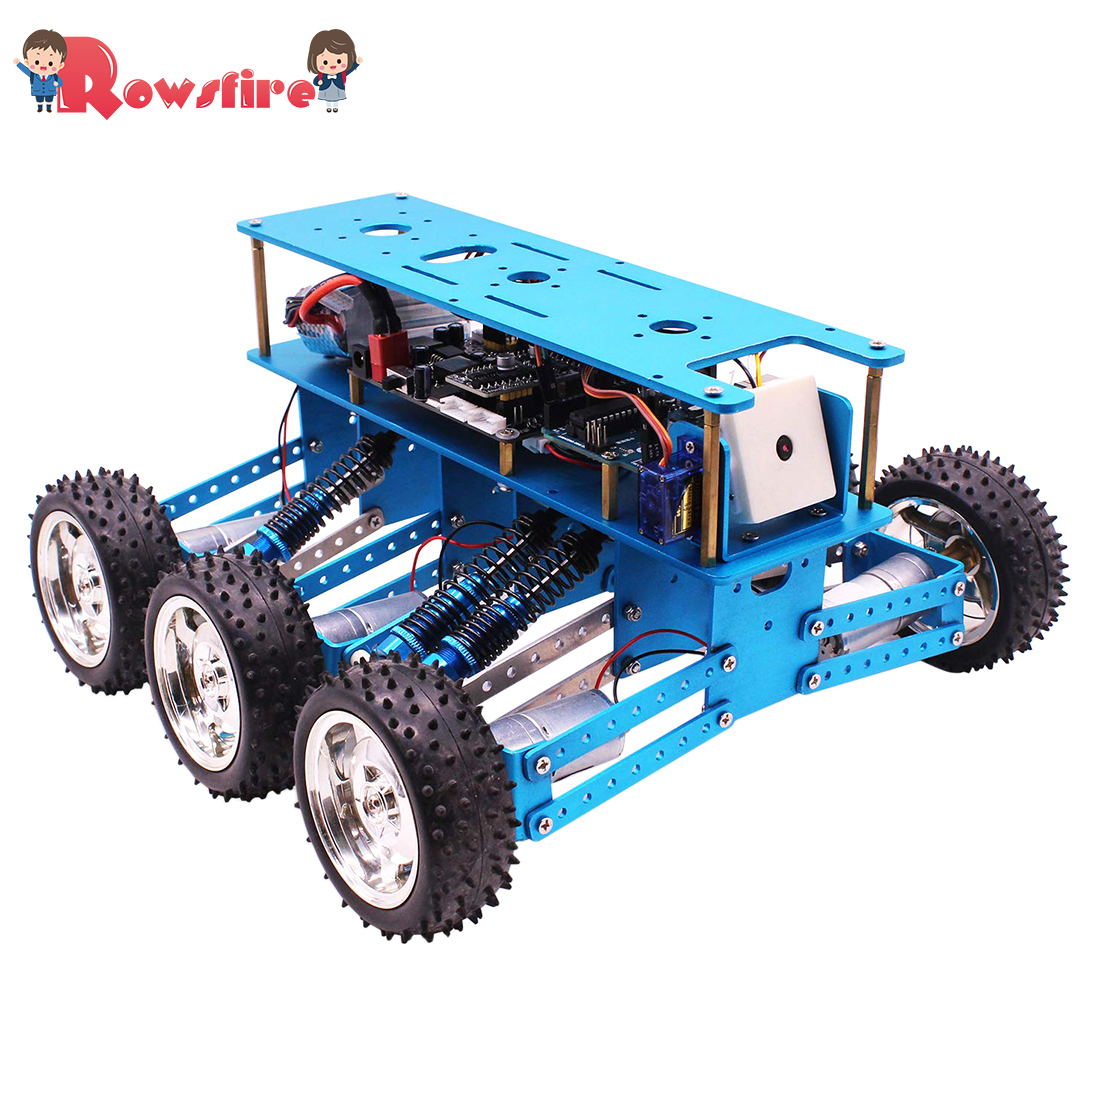 New Hot 6WD Off-Road Robot Car With Camera For Arduino UNO DIY Kit Robot For Programming Intelligent Education And Learning